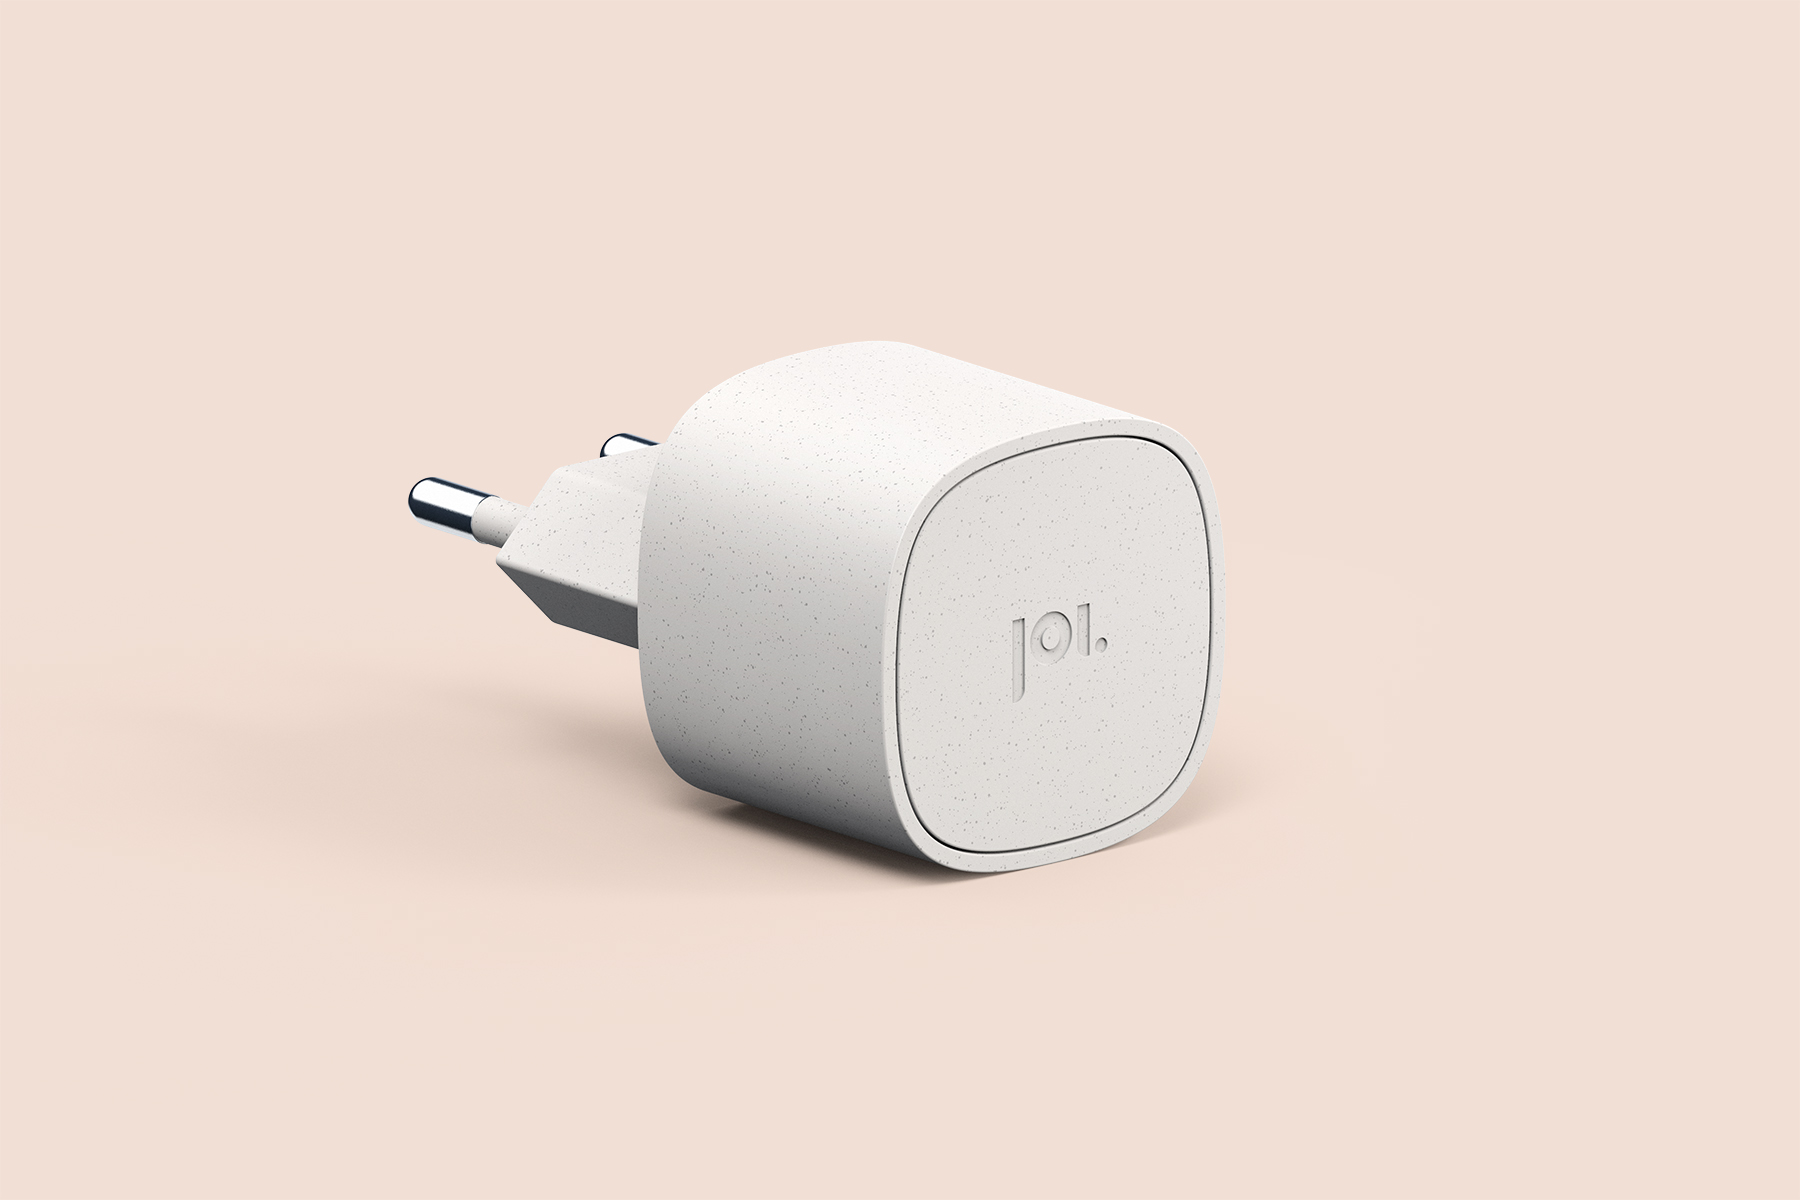 190912_JOI_Charger-floor